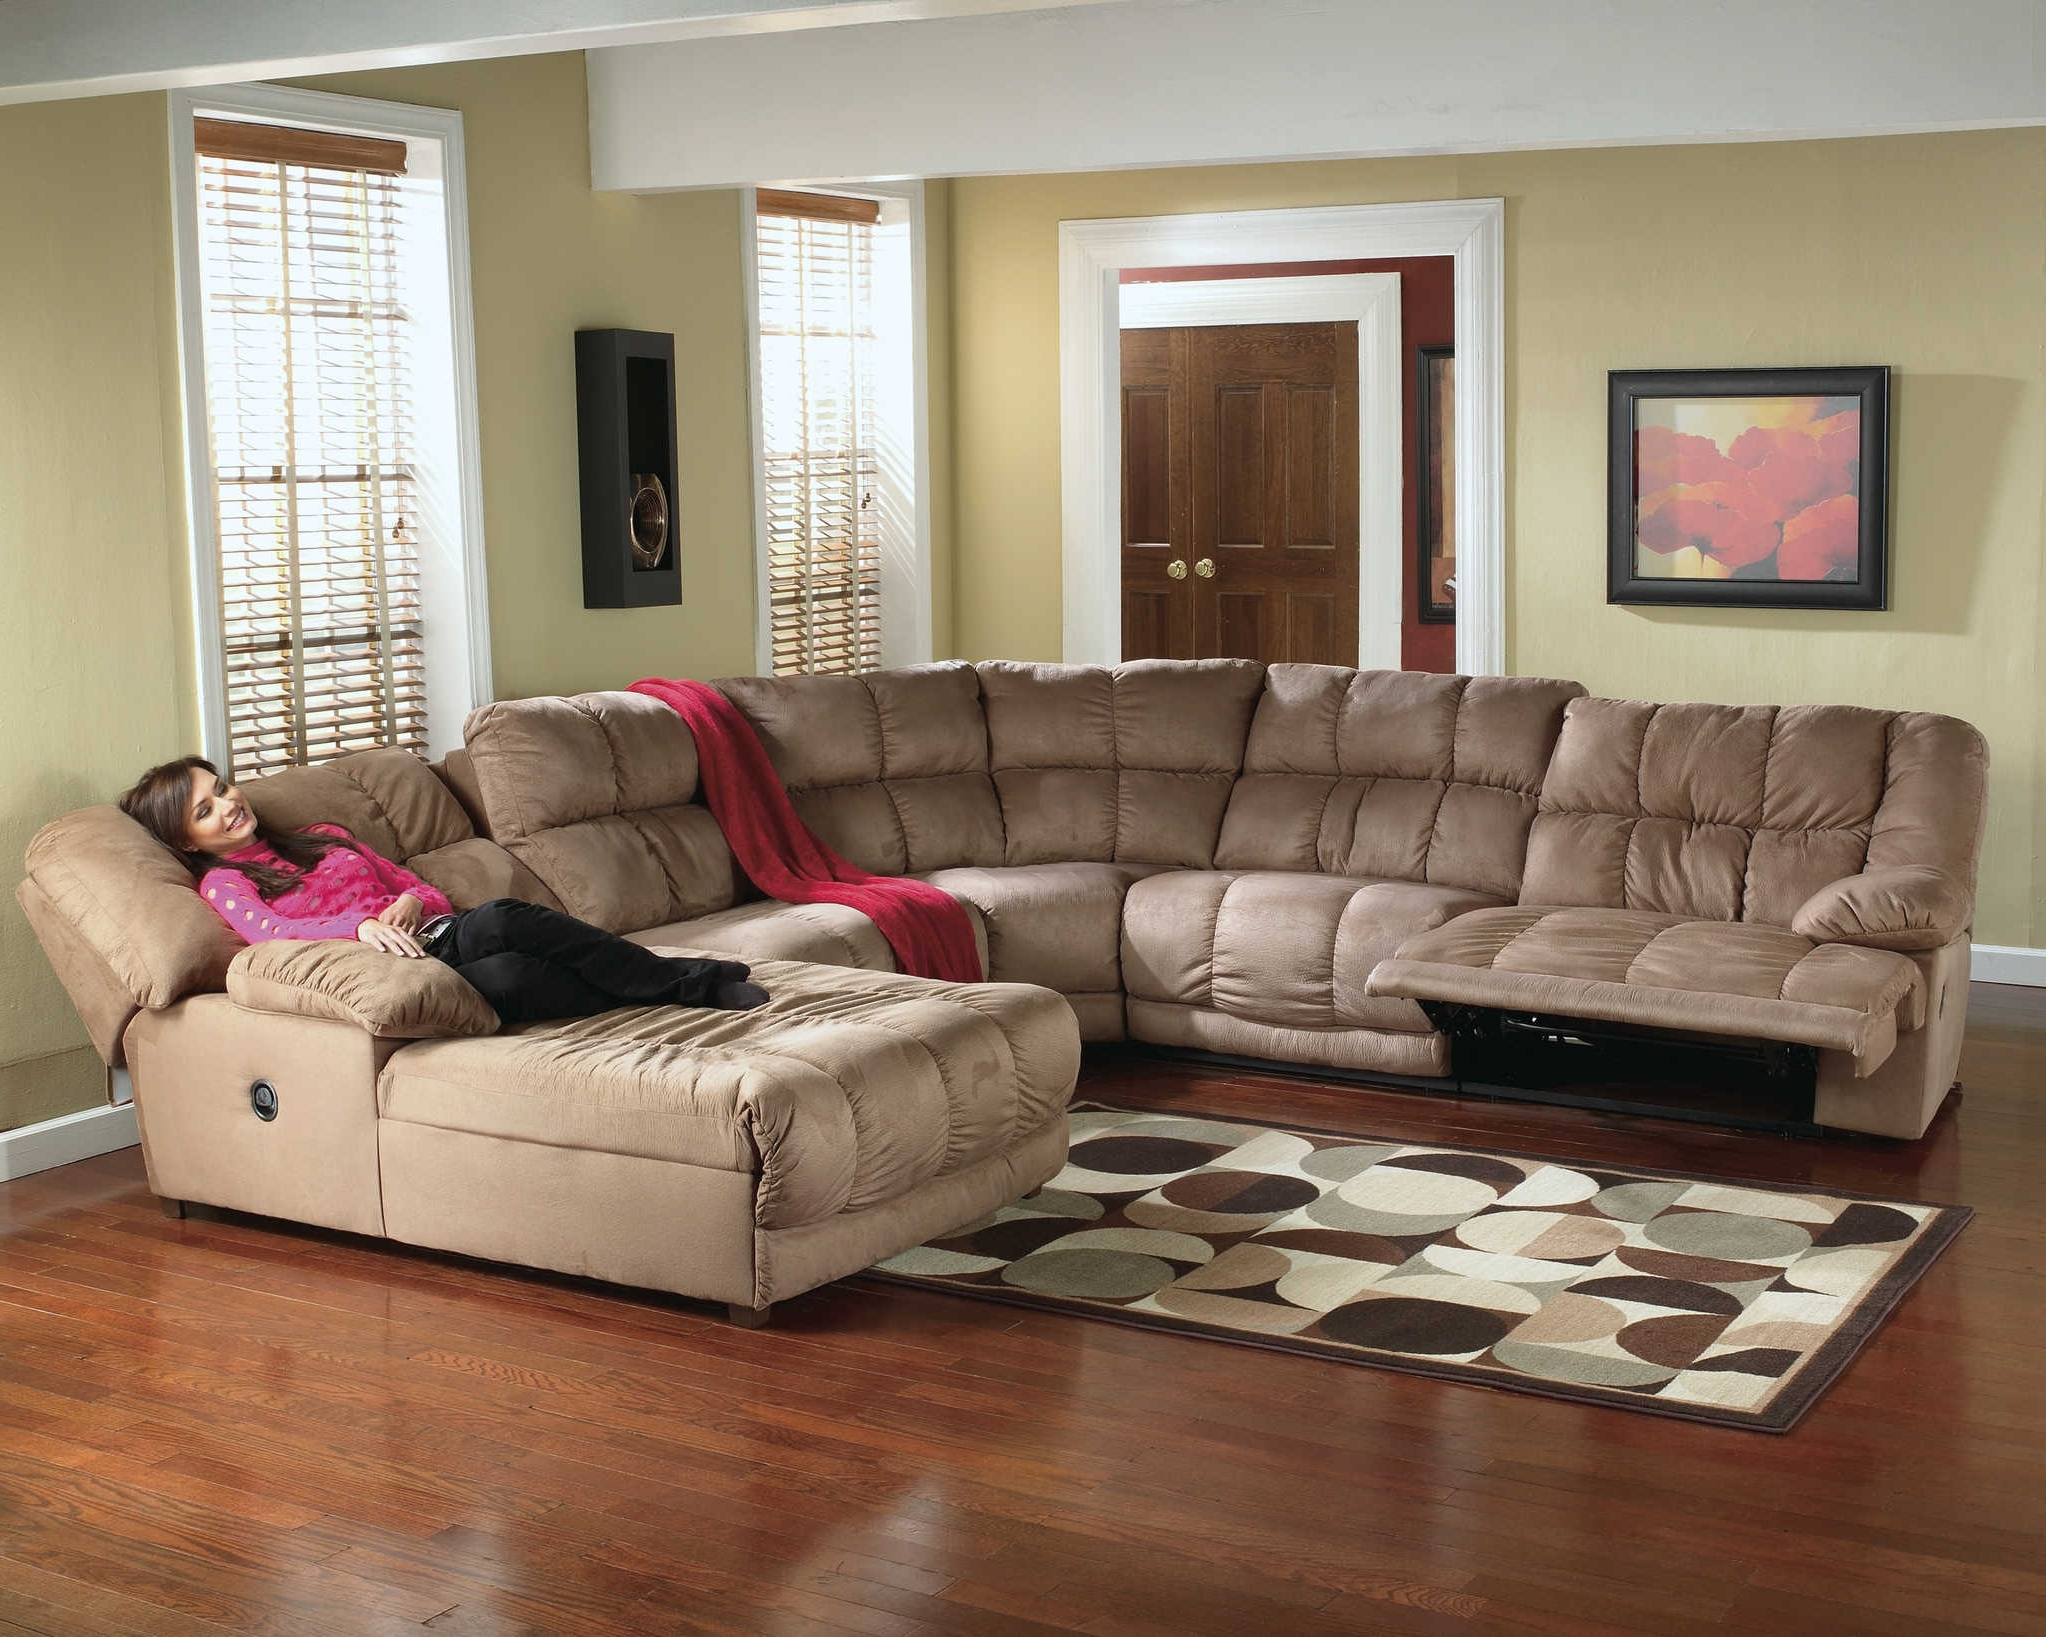 Most Up To Date Media Room Sectional Sofas – Fjellkjeden In Media Room Sectional Sofas (View 12 of 20)